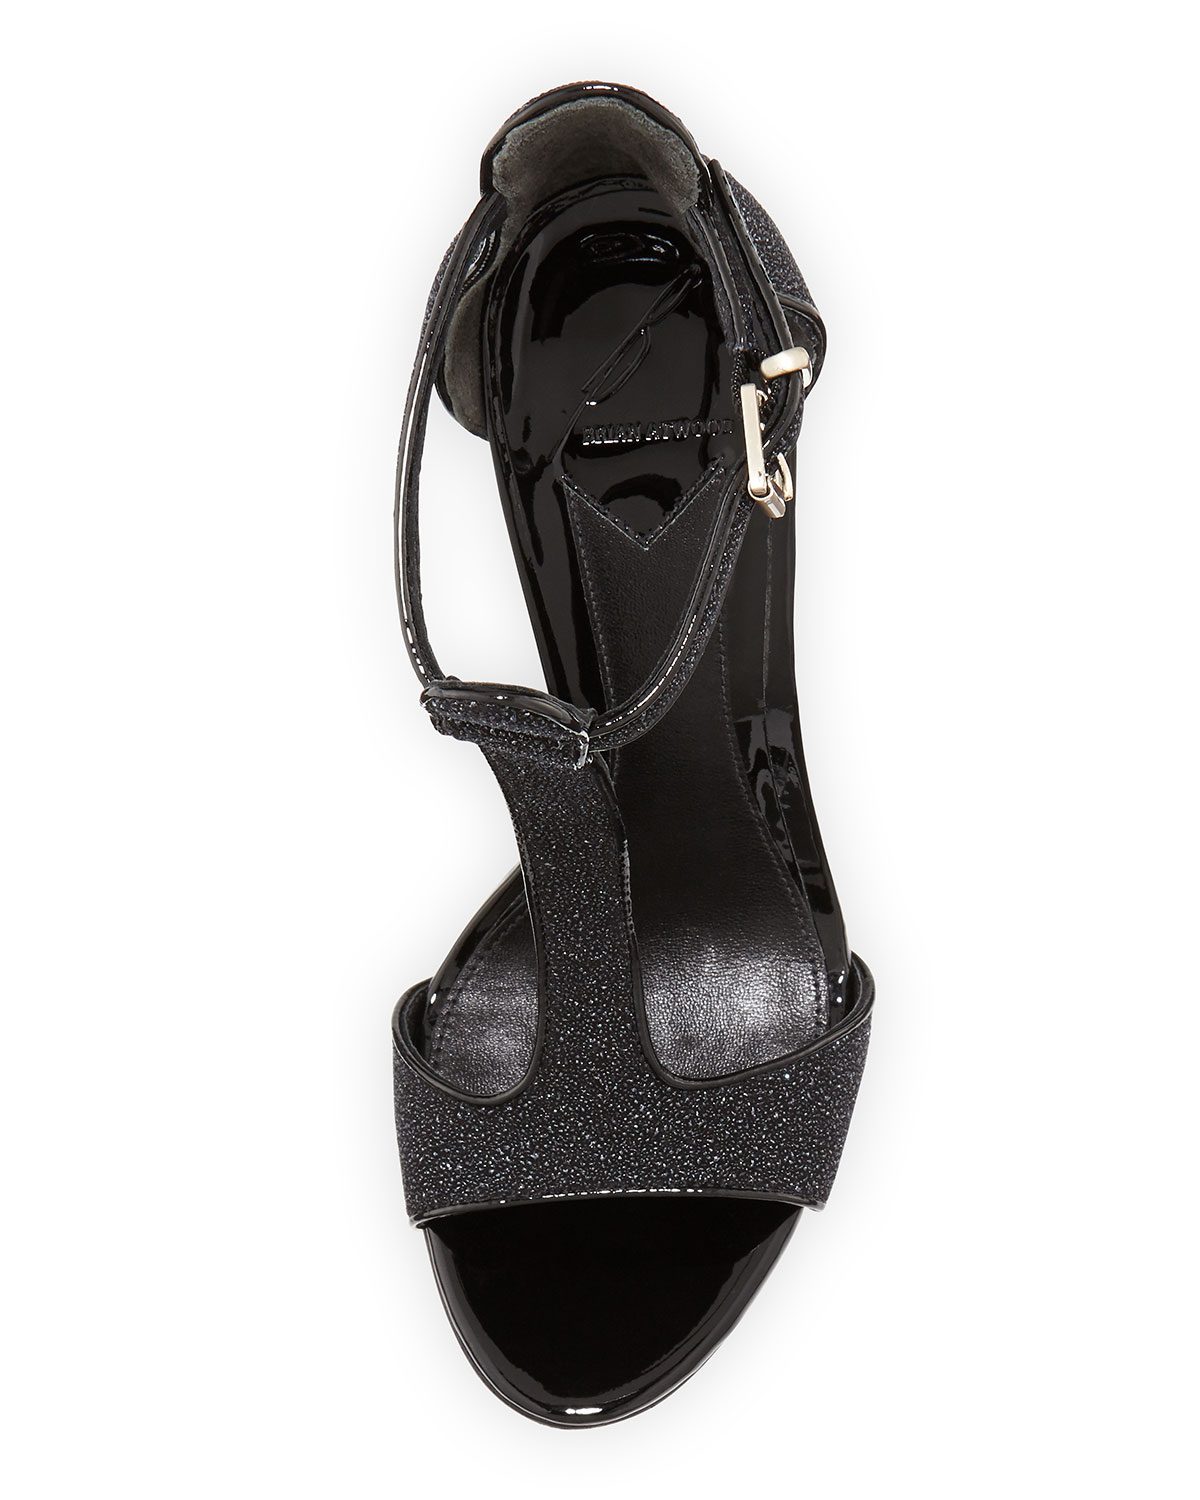 6e12baa968 Lyst - B Brian Atwood Leigha Pebbled Leather T-strap Sandal Black 8 ...